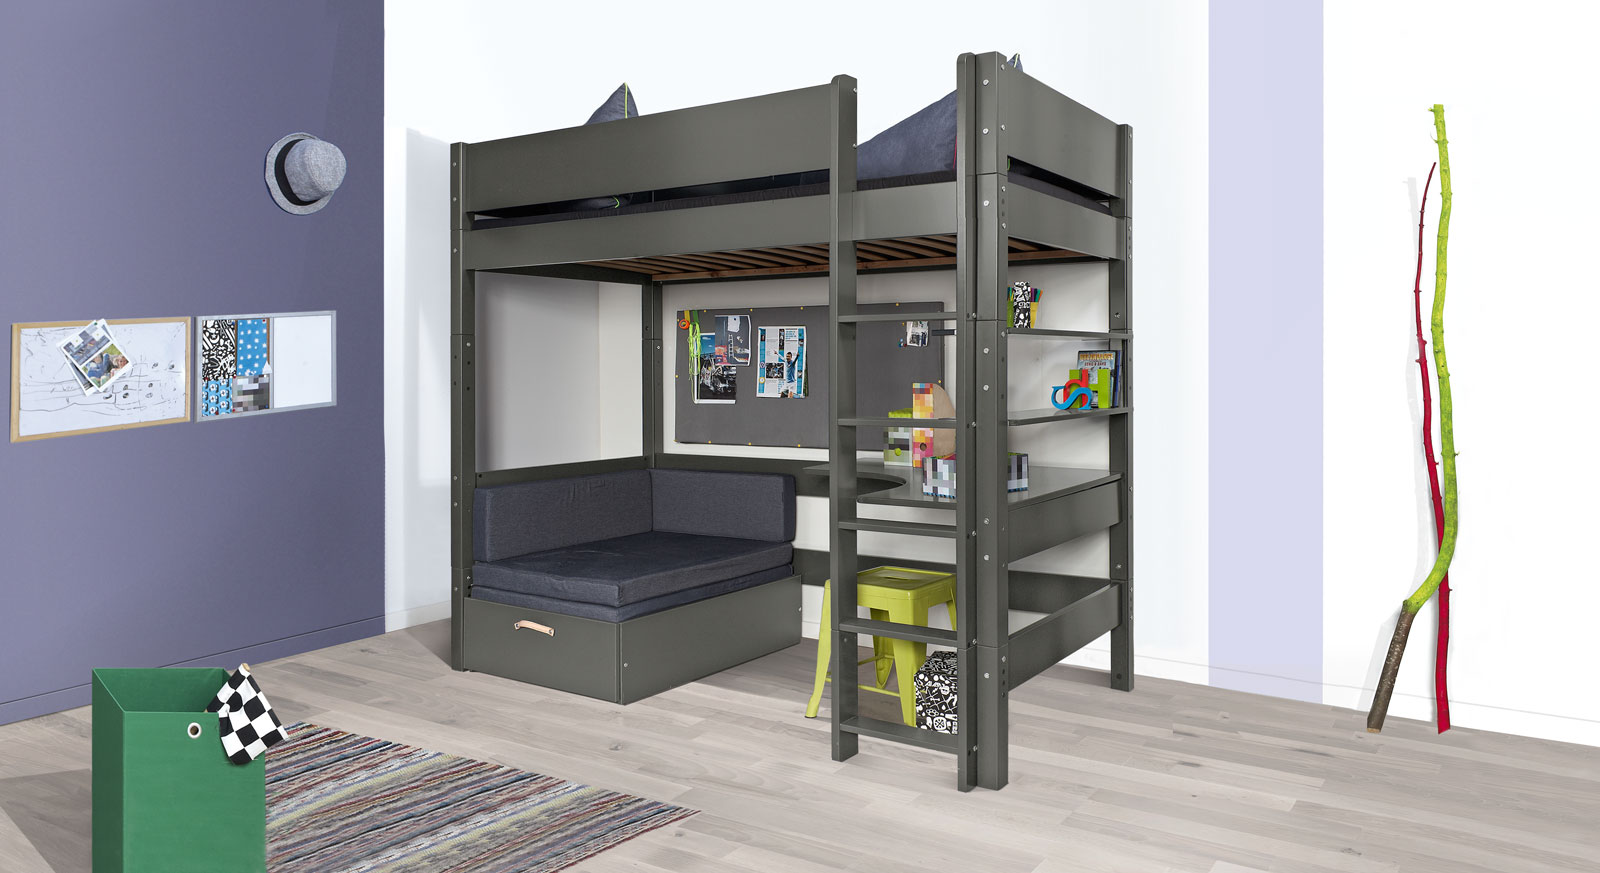 jugendzimmer mit hochbett hausgestaltung ideen. Black Bedroom Furniture Sets. Home Design Ideas